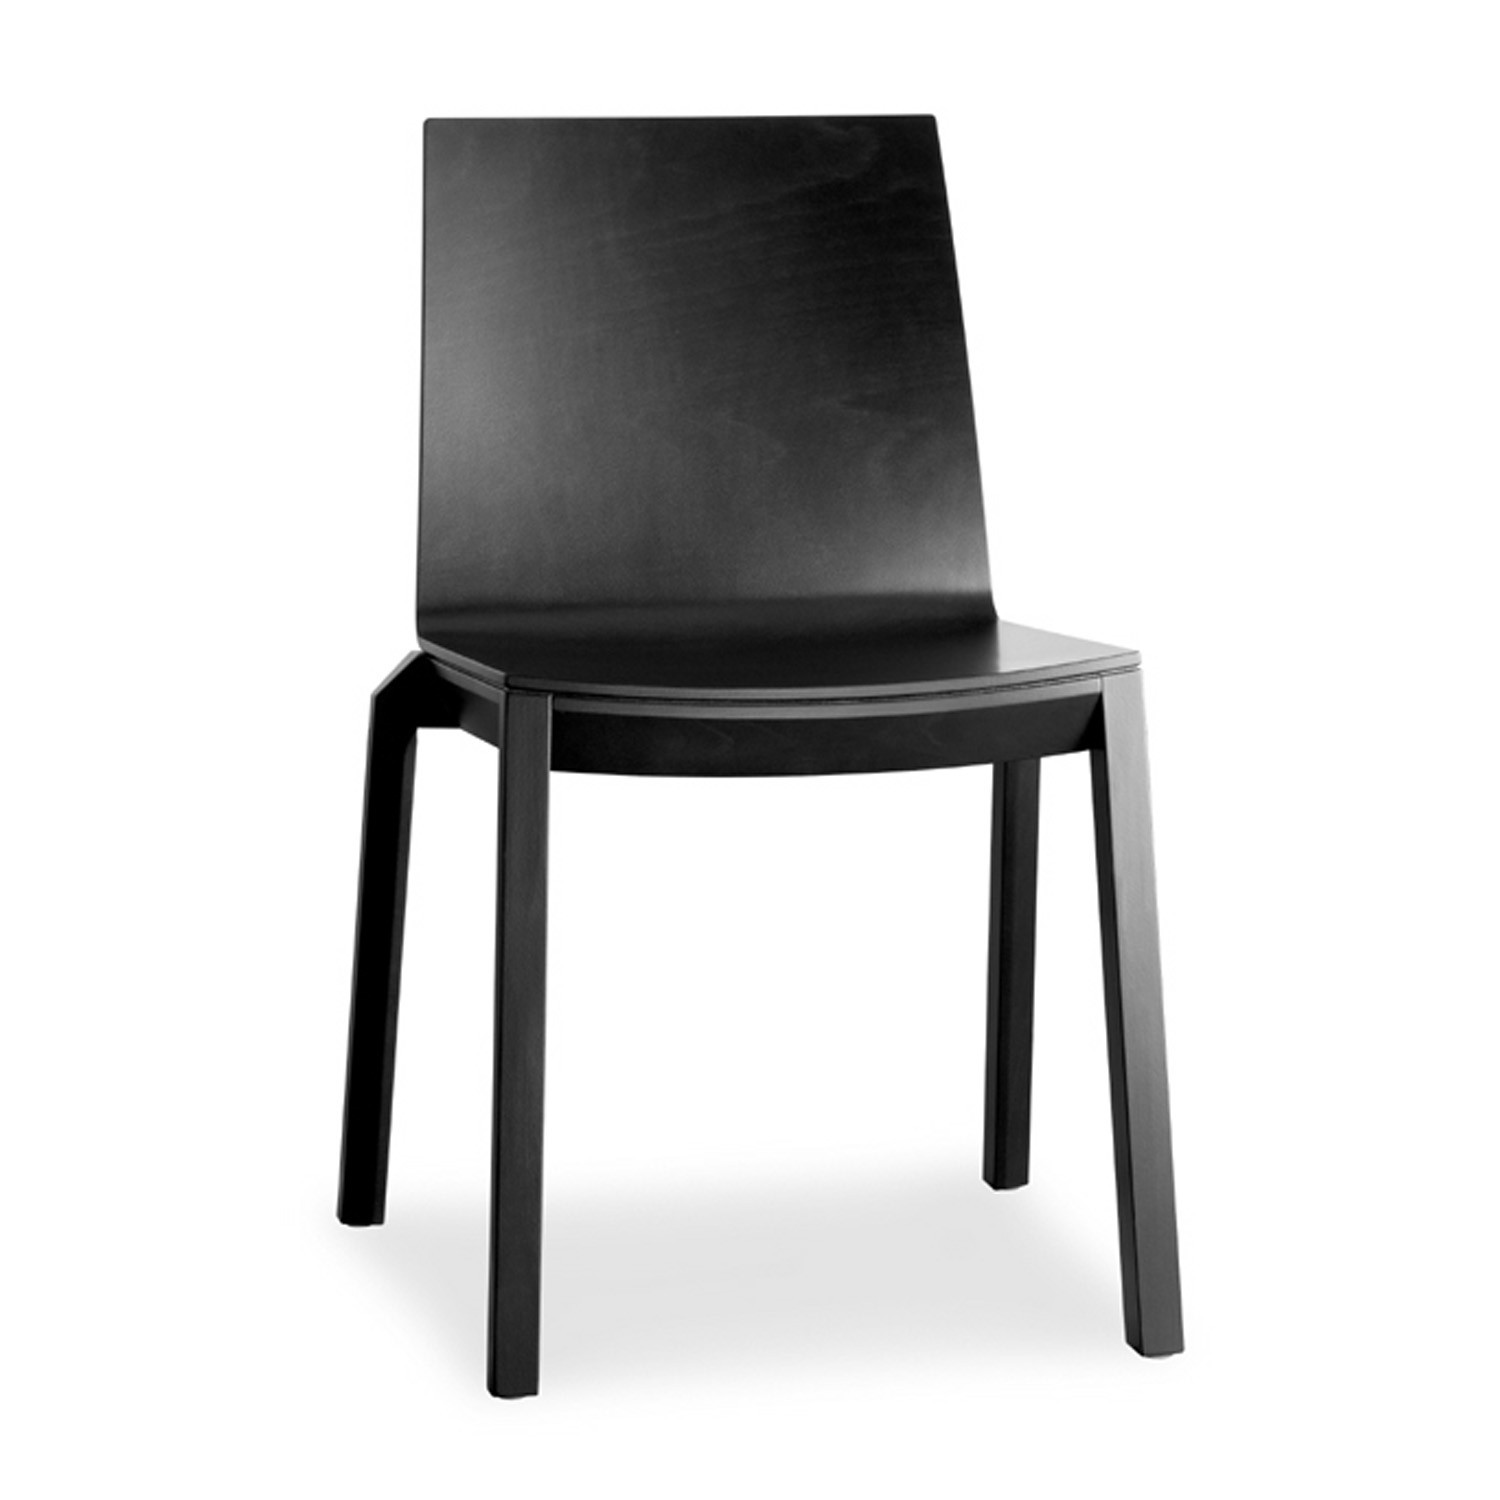 Arta Stacking Chair